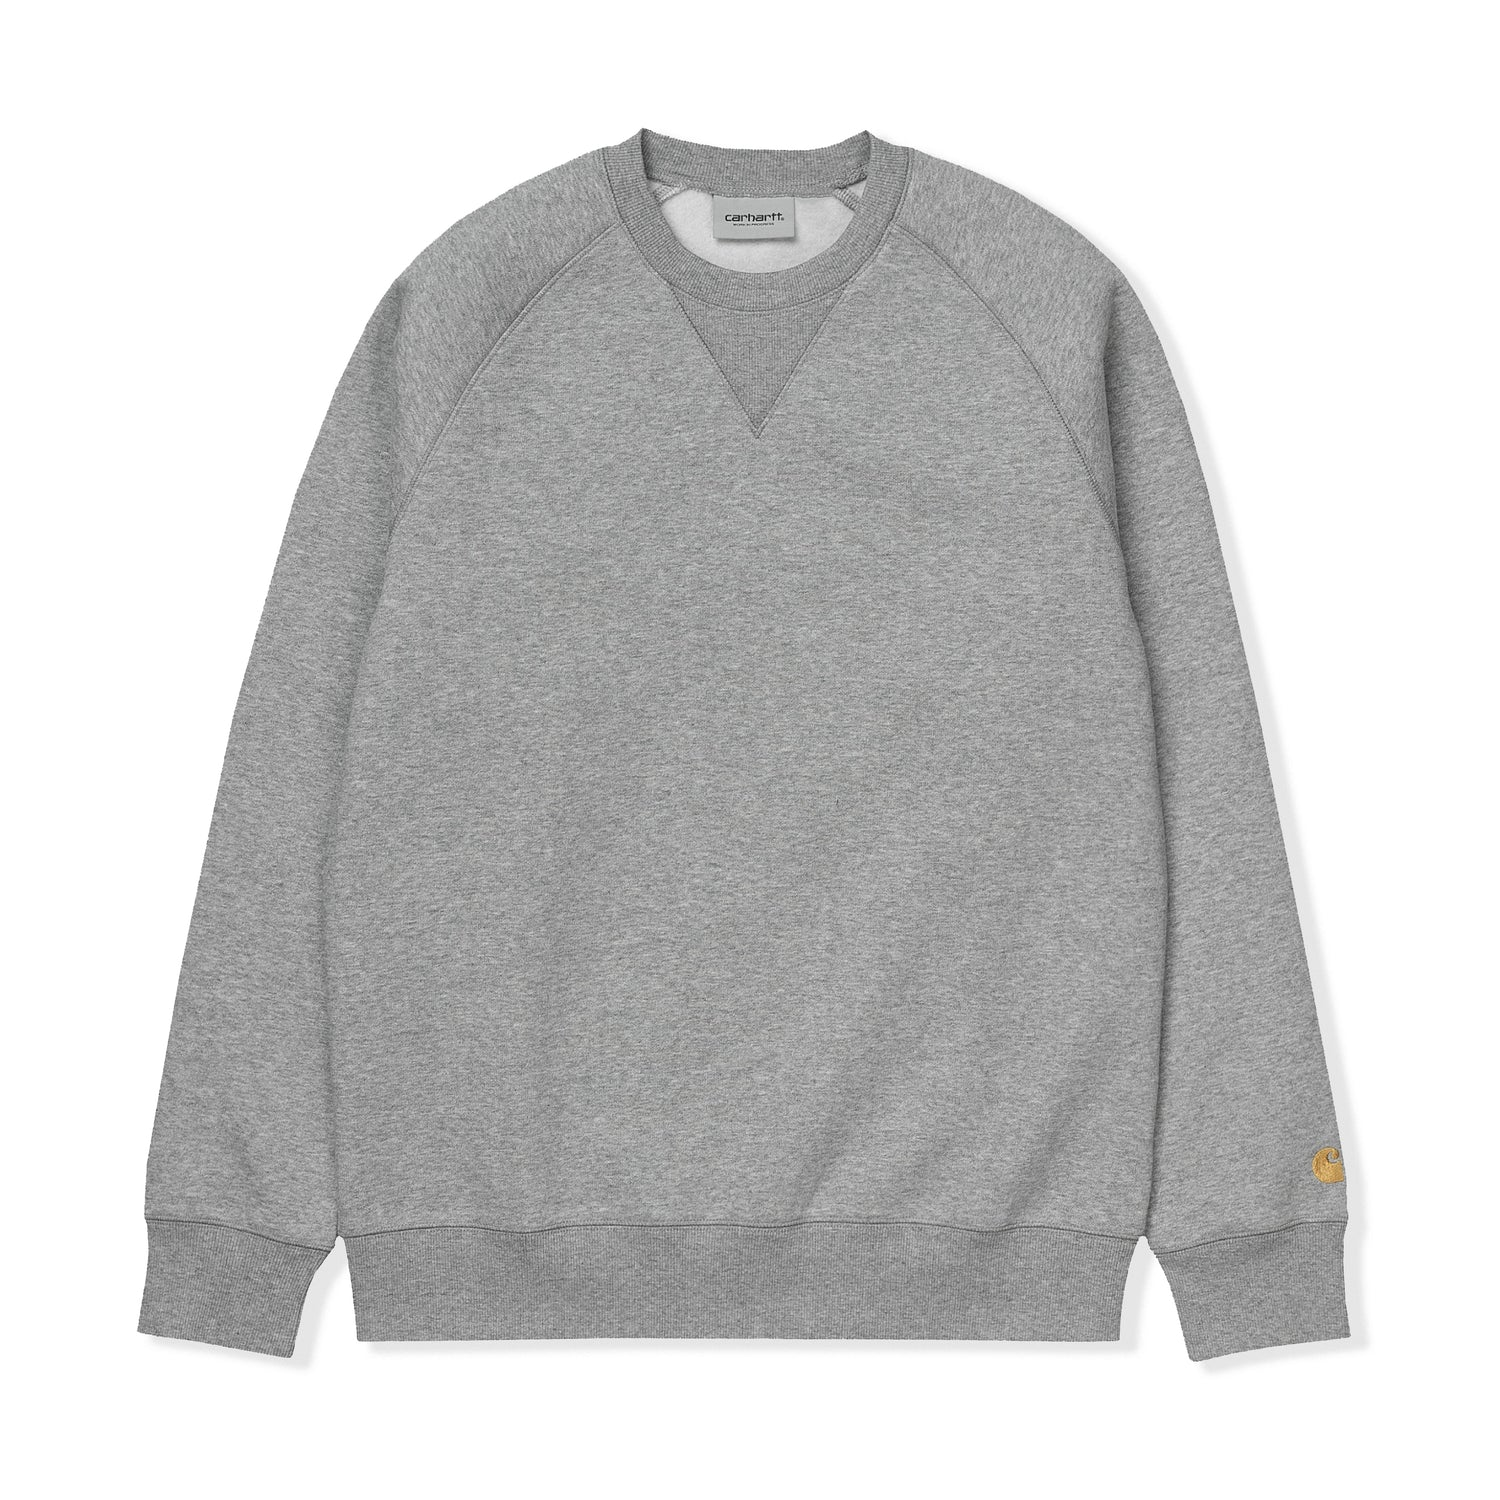 Chase Sweatshirt, Heather Grey